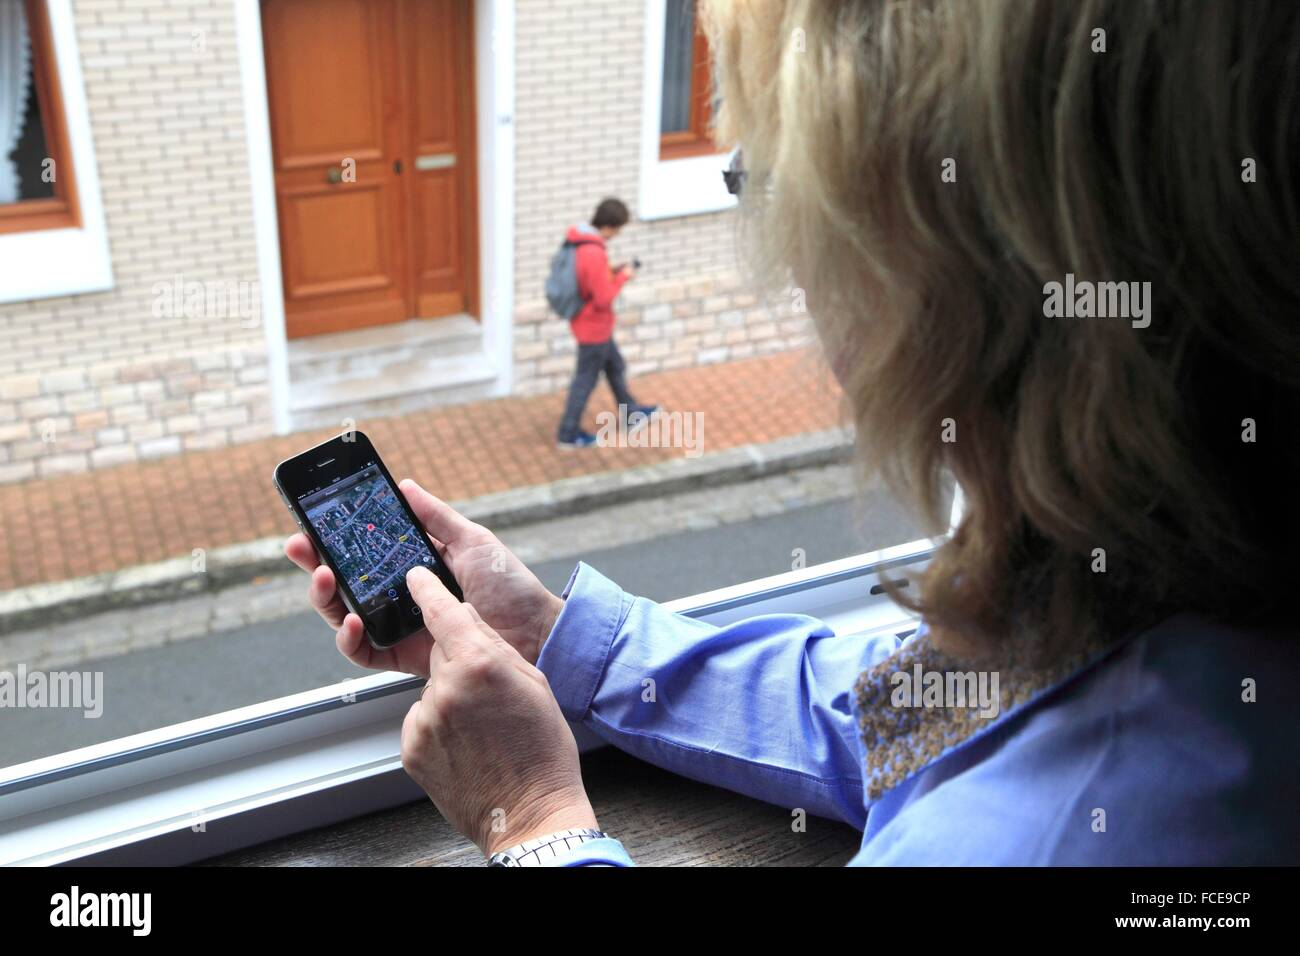 France, mother supervising her son thanks to an application of cellphone localization - Stock Image